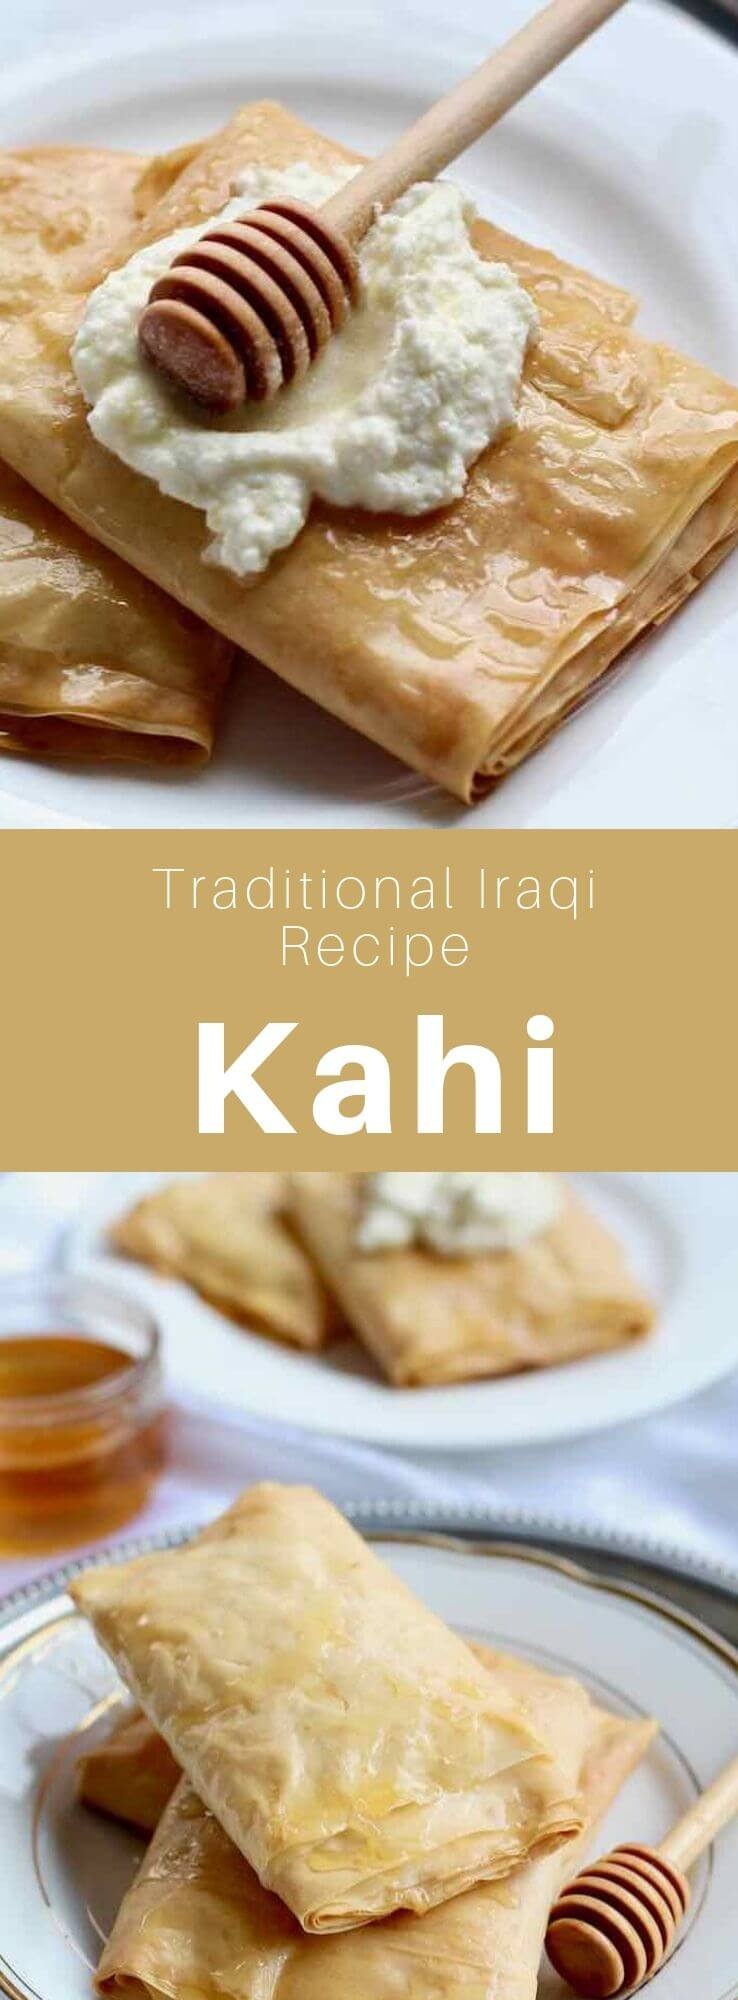 Kahi is a delicious traditional Iraqi dessert made from filo dough and butter, and served with clotted cream. #Iraq #IraqiCuisine #IraqiRecipe #MiddleEastern #WorldCuisine #196flavors